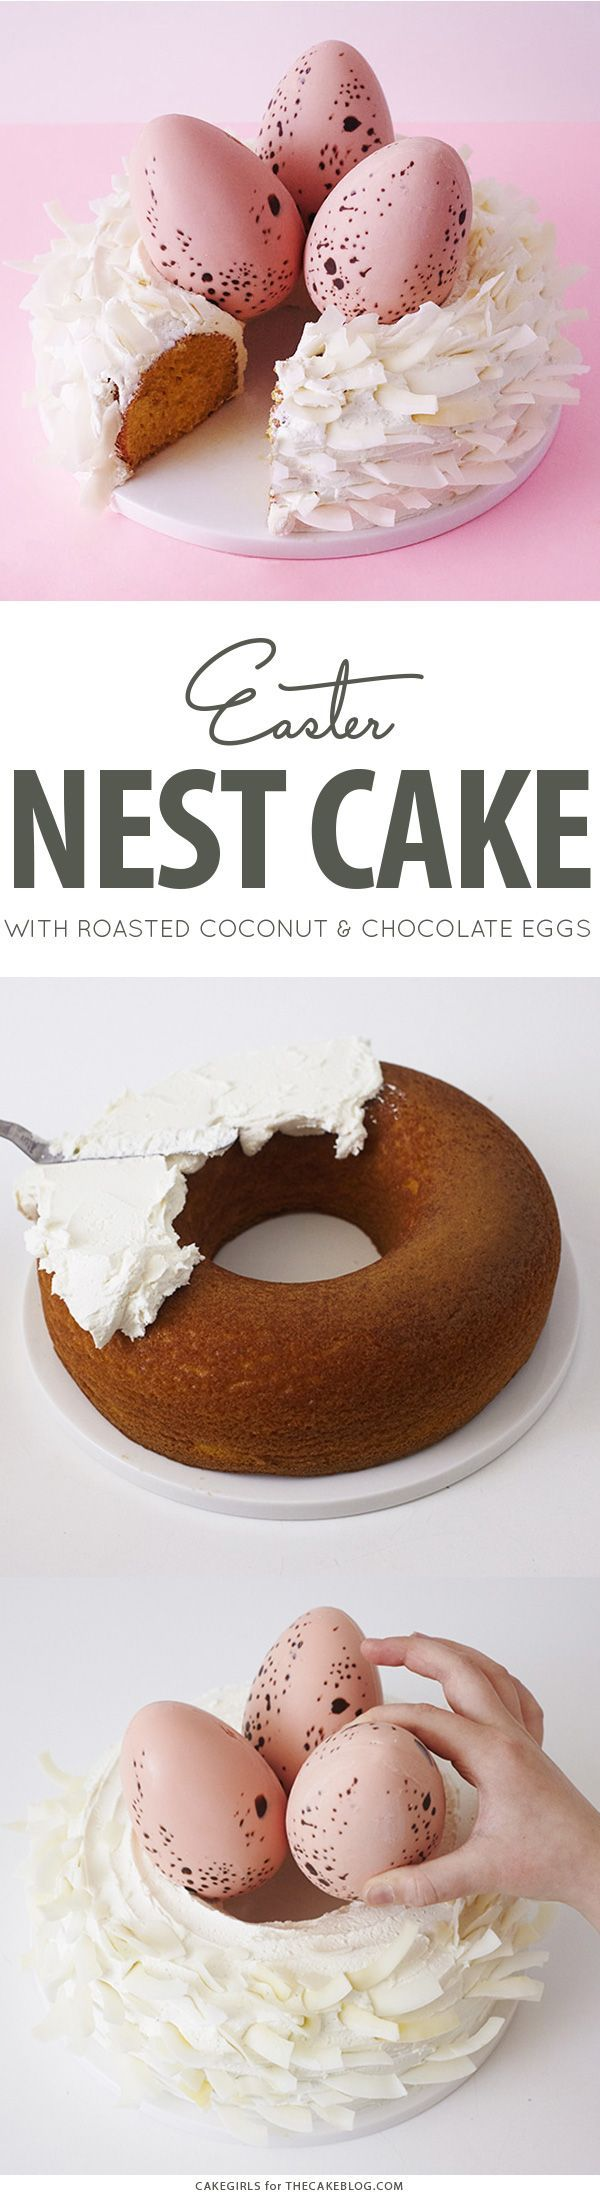 Easter Nest Cake - how to make a nest cake with roasted coconut and chocolate eggs for Easter dessert   by Cakegirls for TheCakeBlog.com